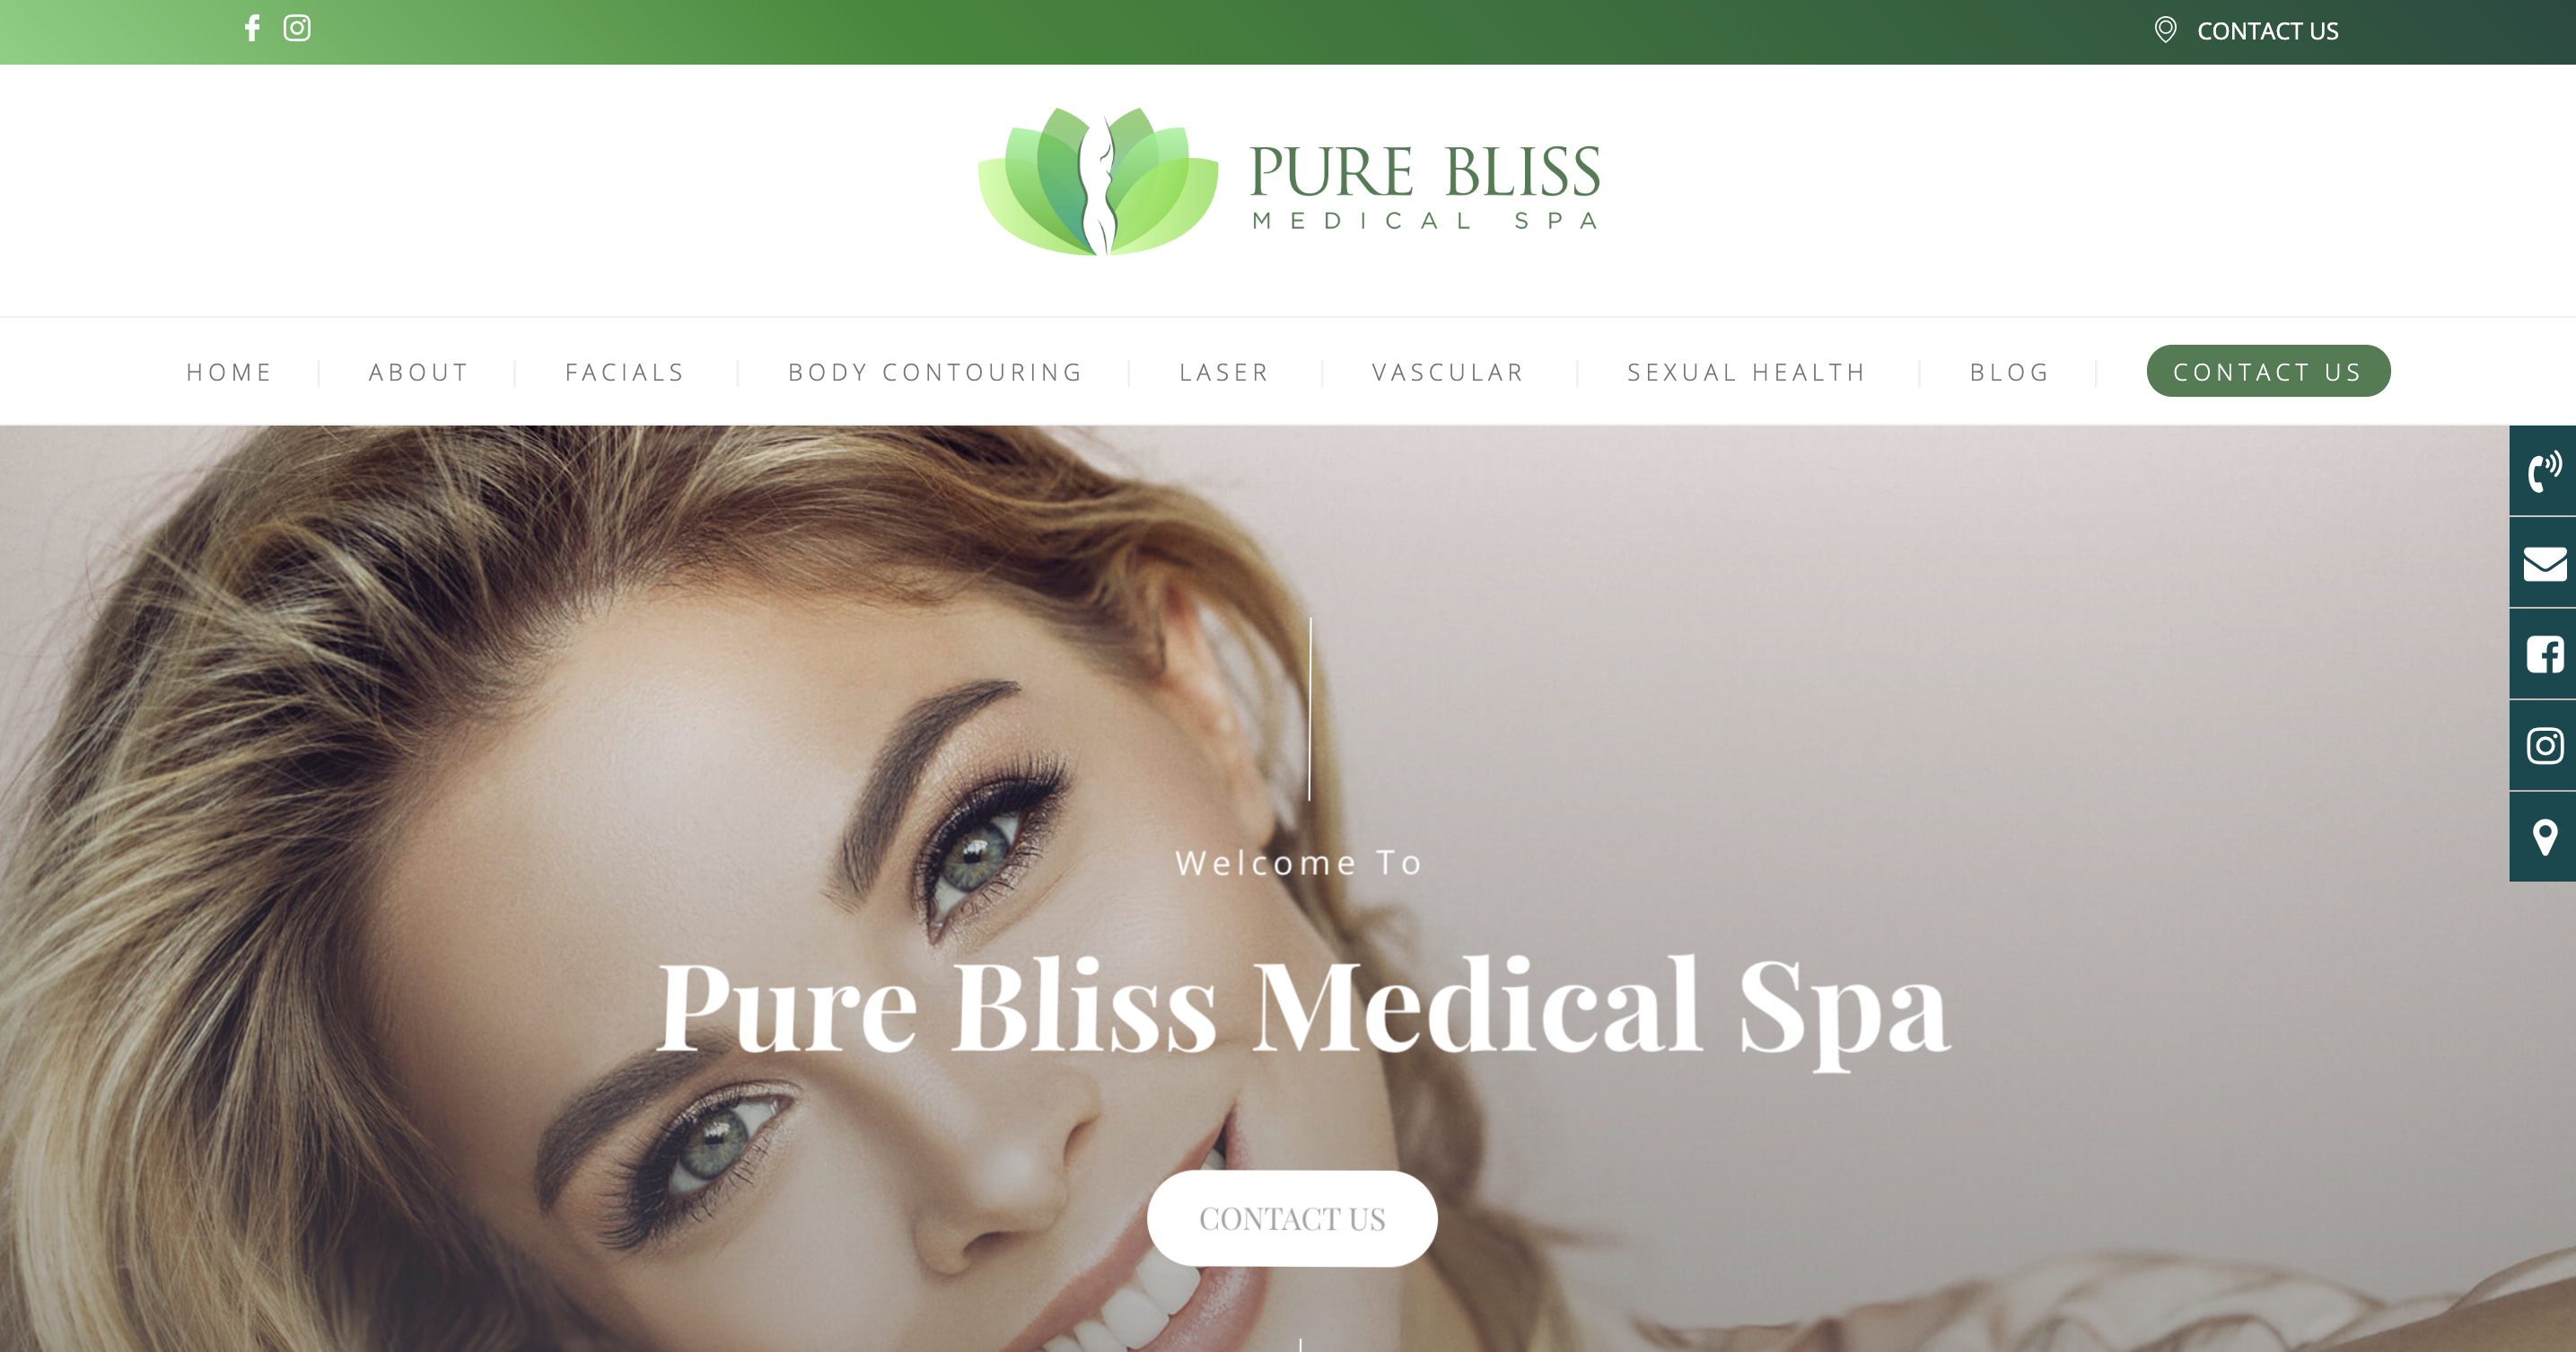 Pure Bliss Medical Spa